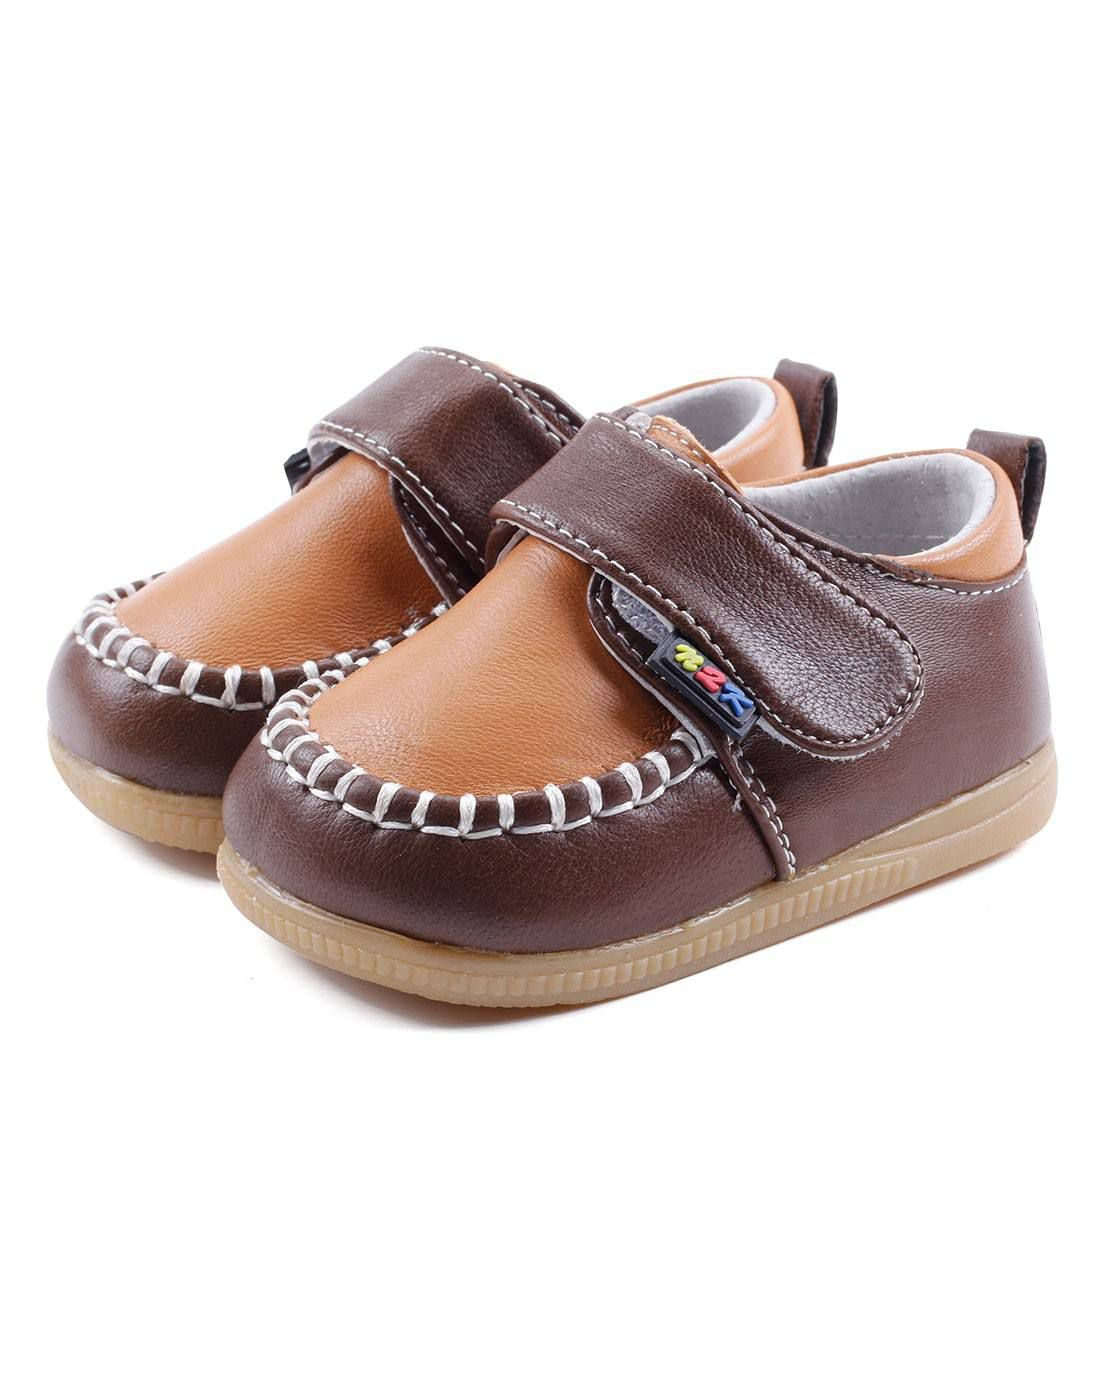 Baby shoes Can be customized practicaldurablestrong